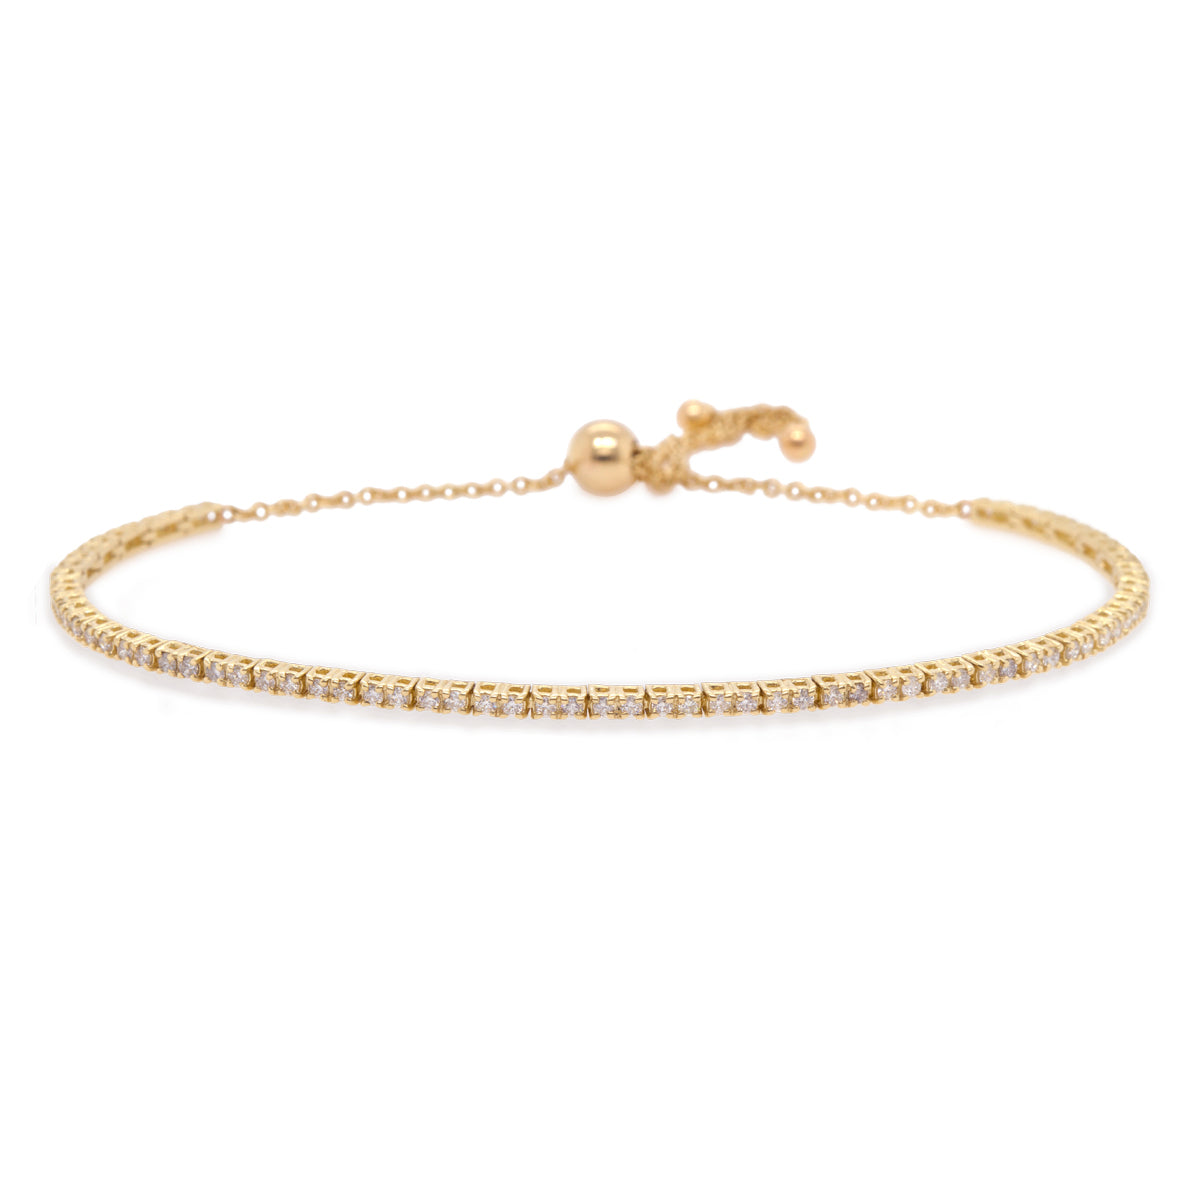 14k prong diamond bar tennis bolo bracelet